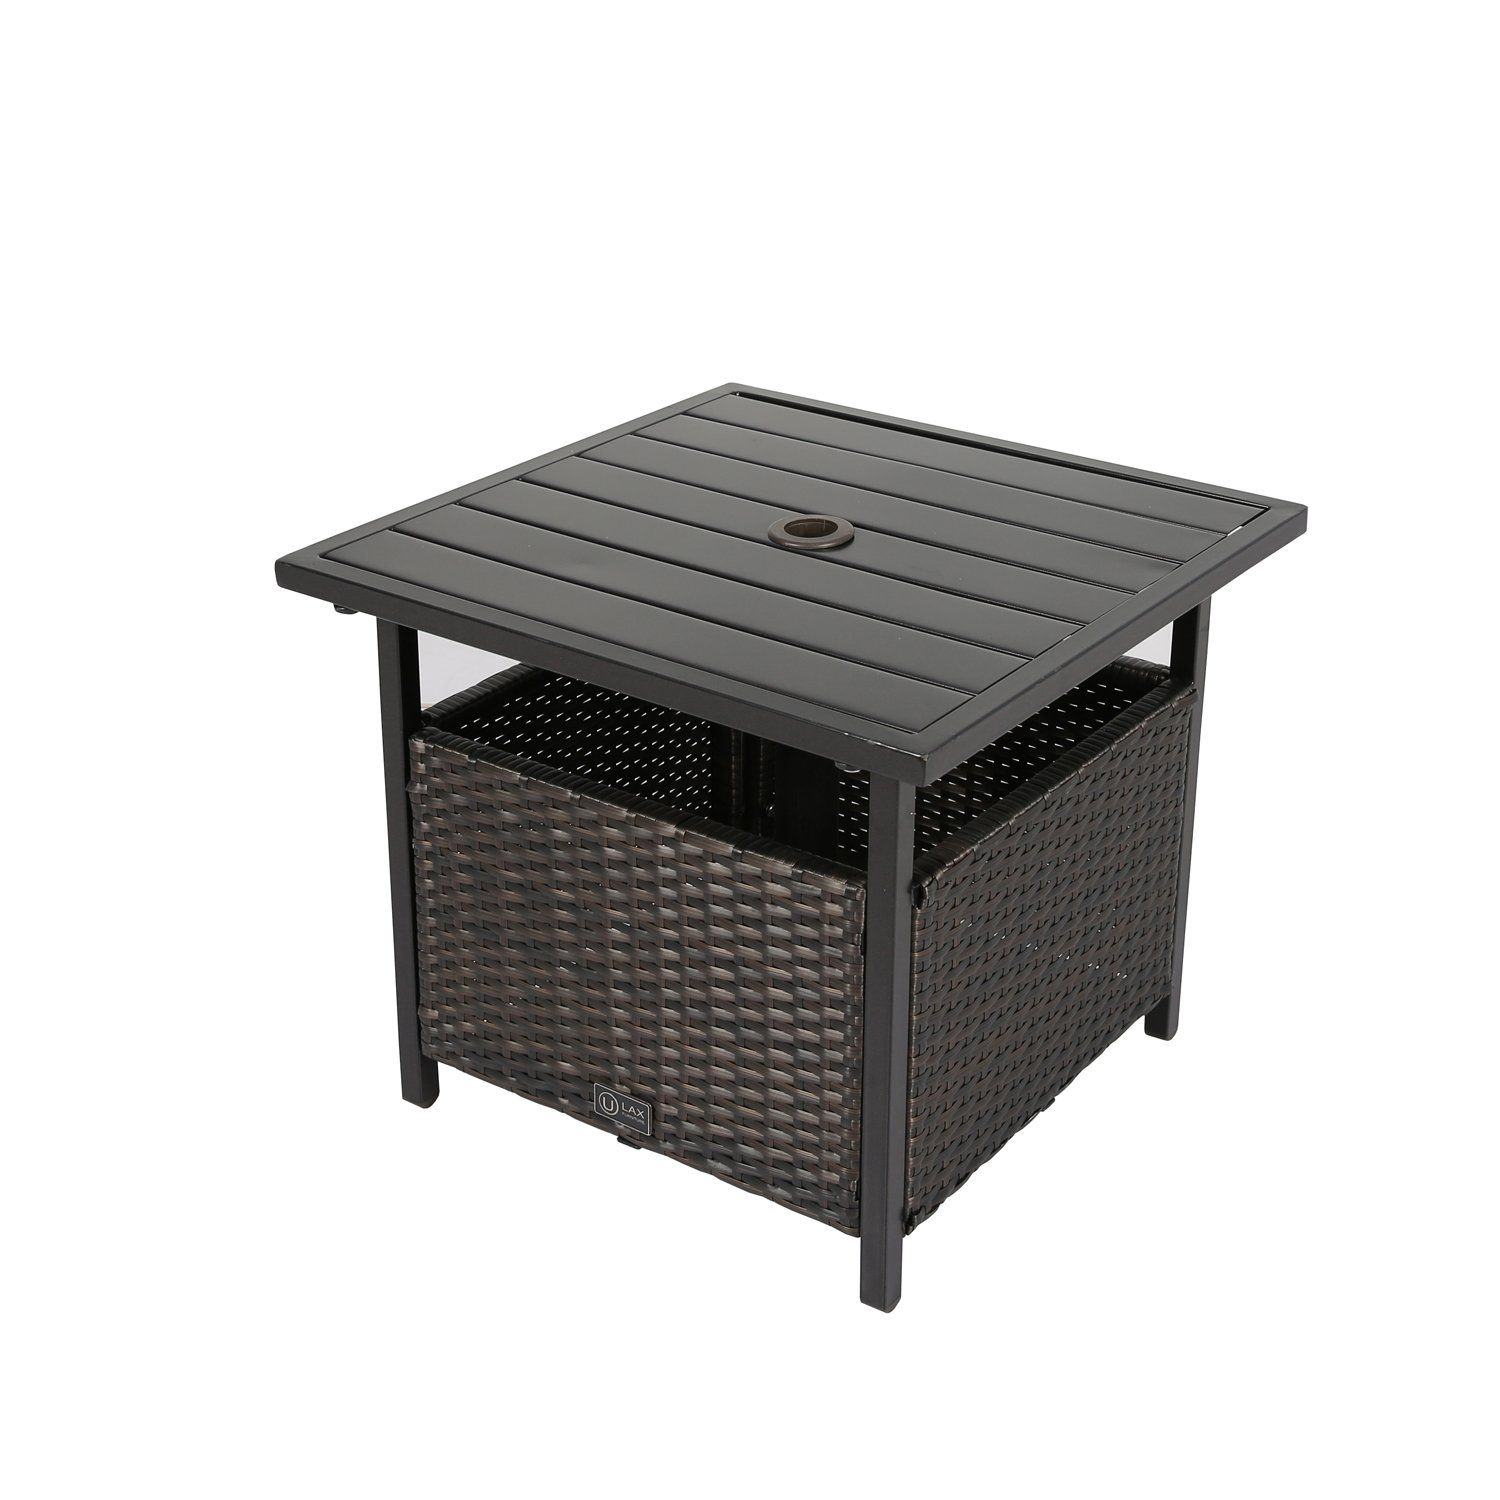 ulax furniture patio outdoor wicker umbrella stand bistro table side check out this great product affiliate link drawer cabinet large dryers tall with stools reclaimed wood corner